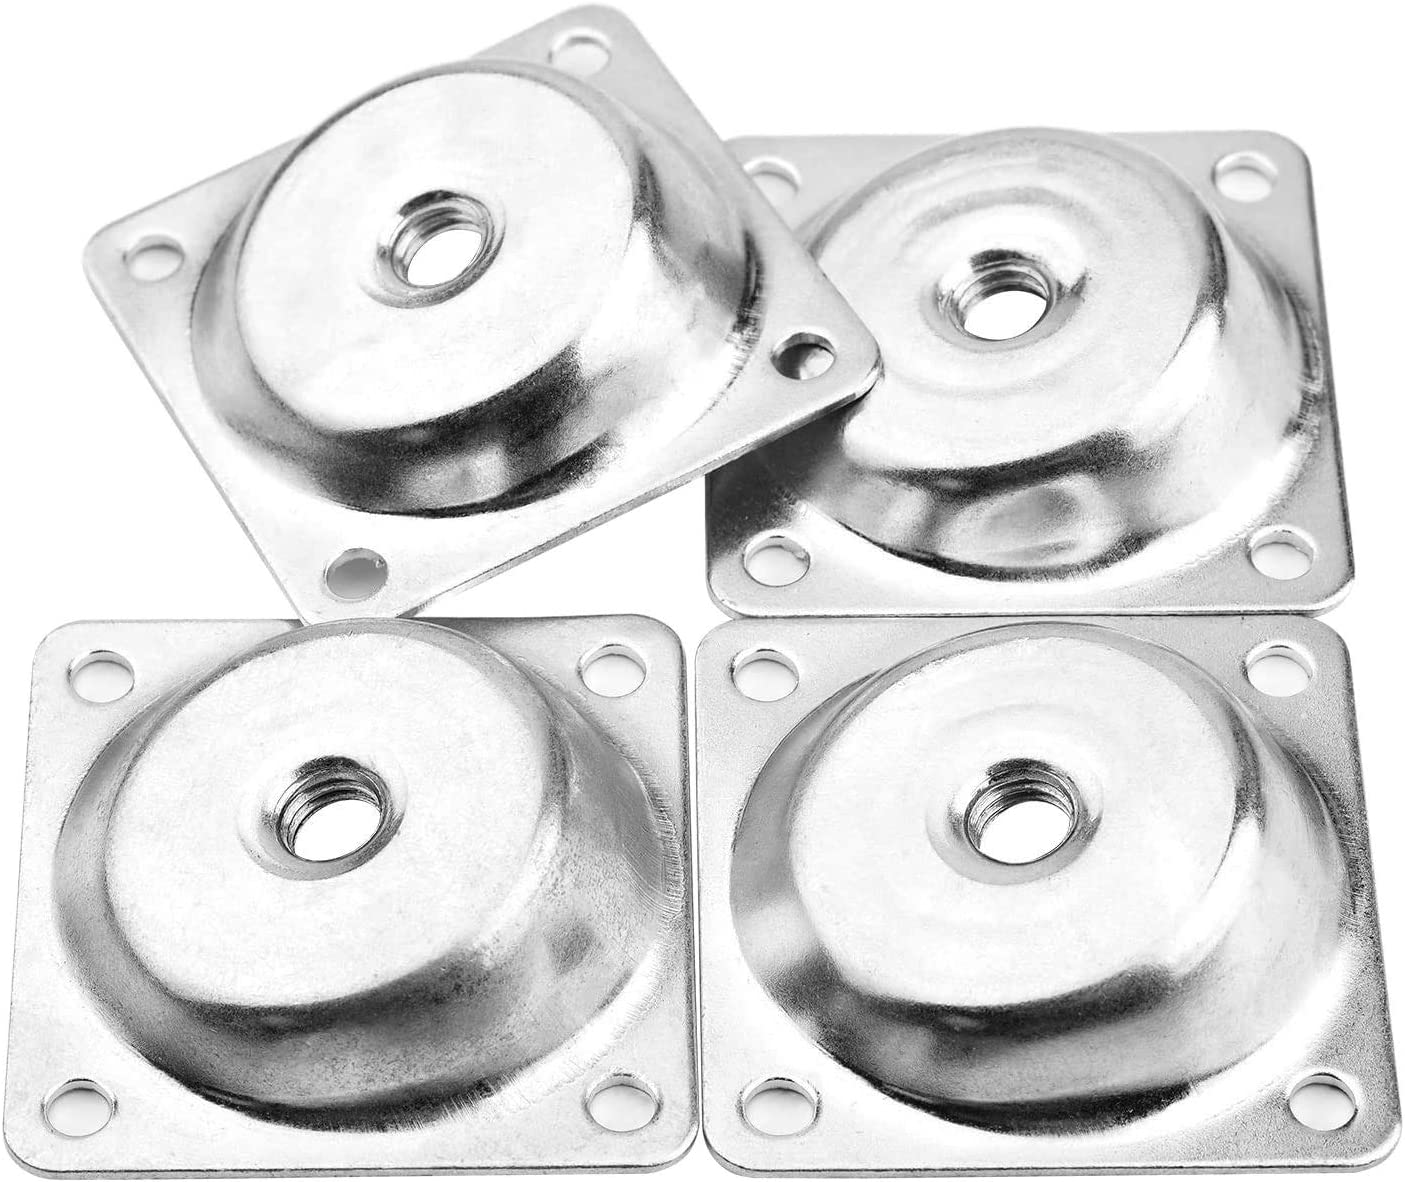 Leg Mounting Plate 5Pcs Strengthen Furniture Leg Connection Board Repair Accessories for Damaged Sofa